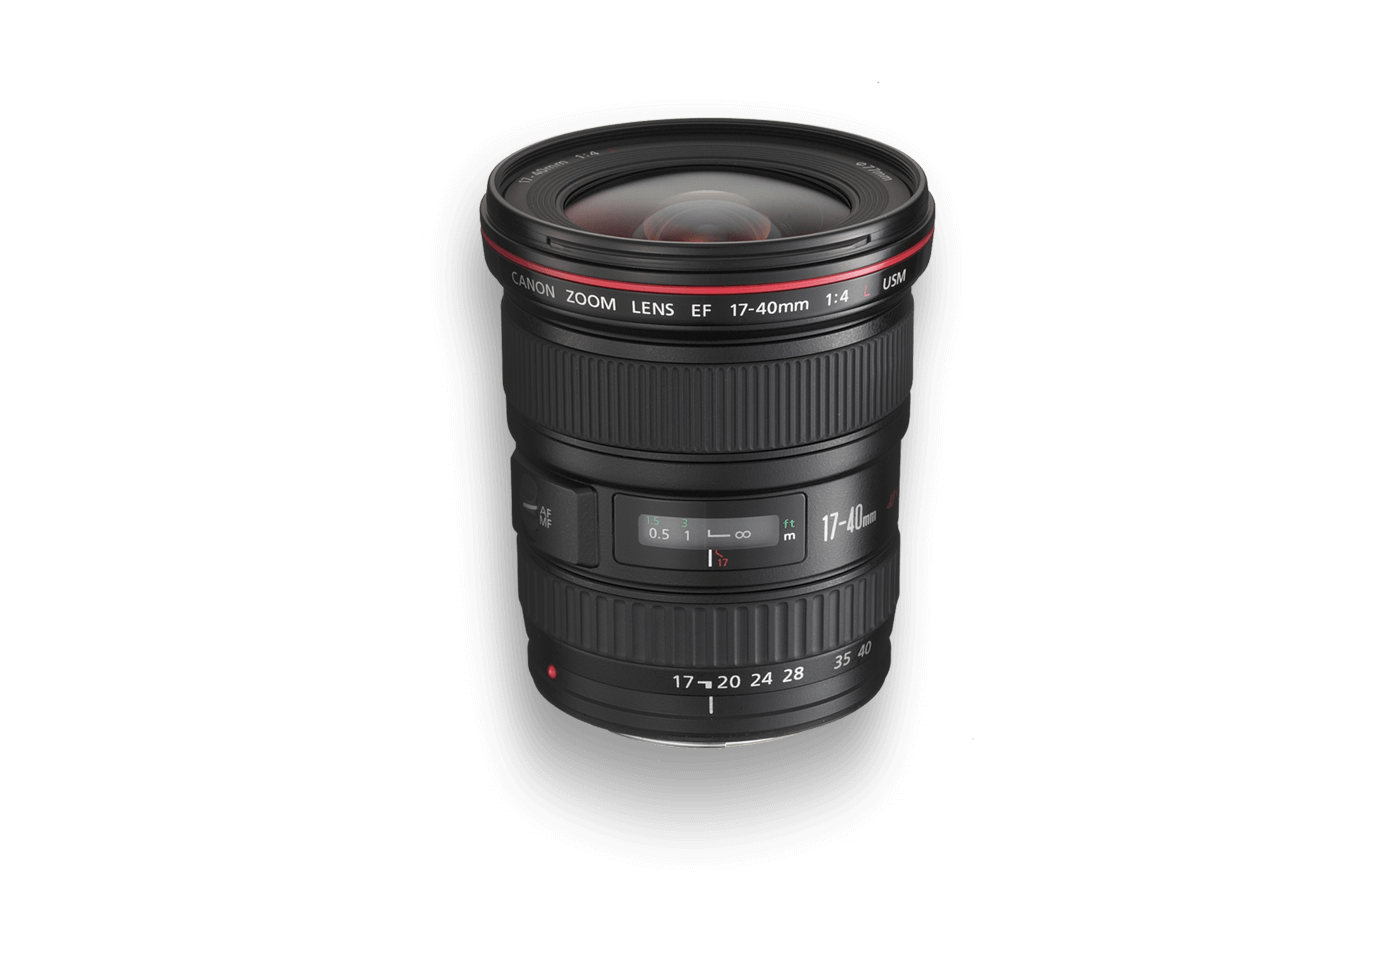 Side view of Canon EF 17-40mm f/4L USM lens